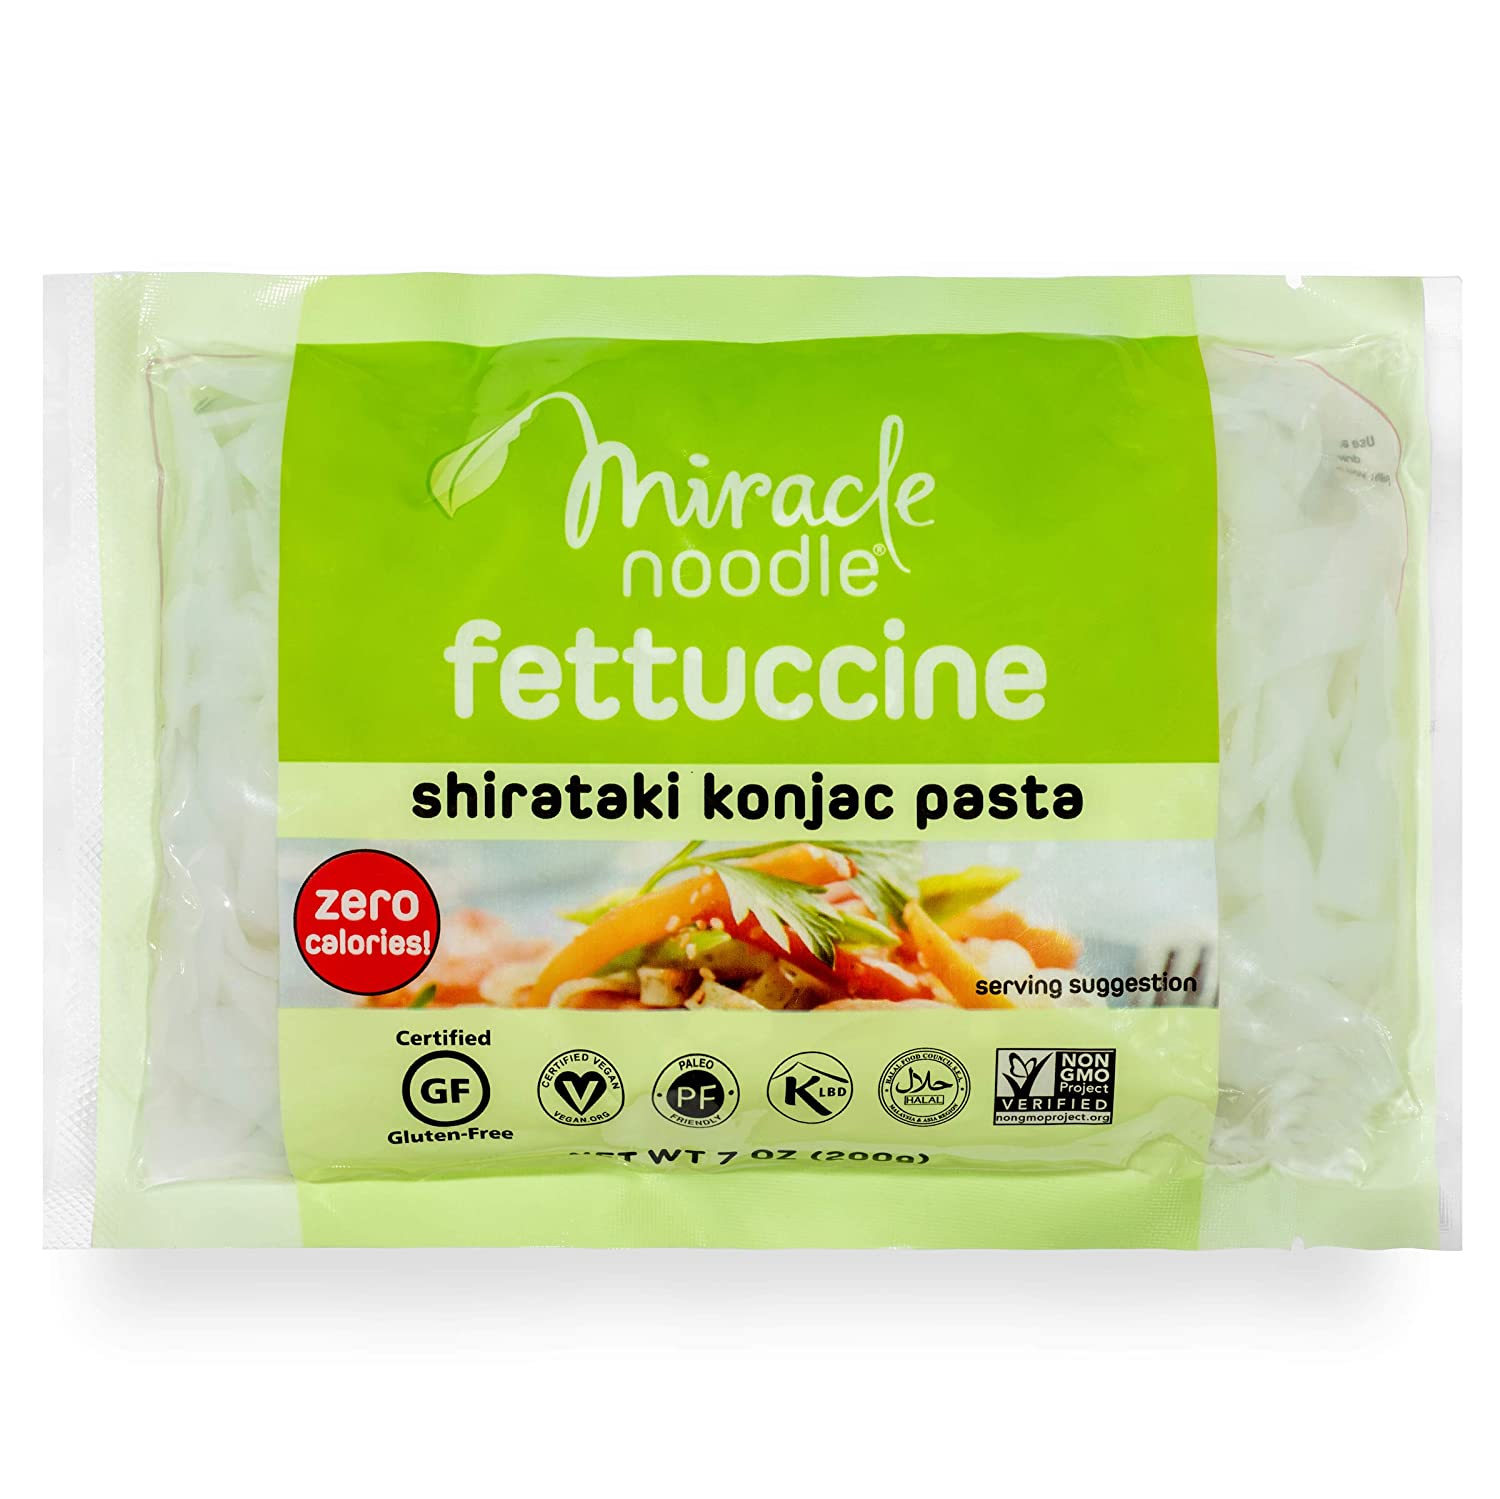 Miracle Noodle Shirataki Konjac Fettuccine Pasta, 7 oz (Pack of 6), Zero Carbs, Zero Calories, Gluten Free, Soy Free, Keto Friendly